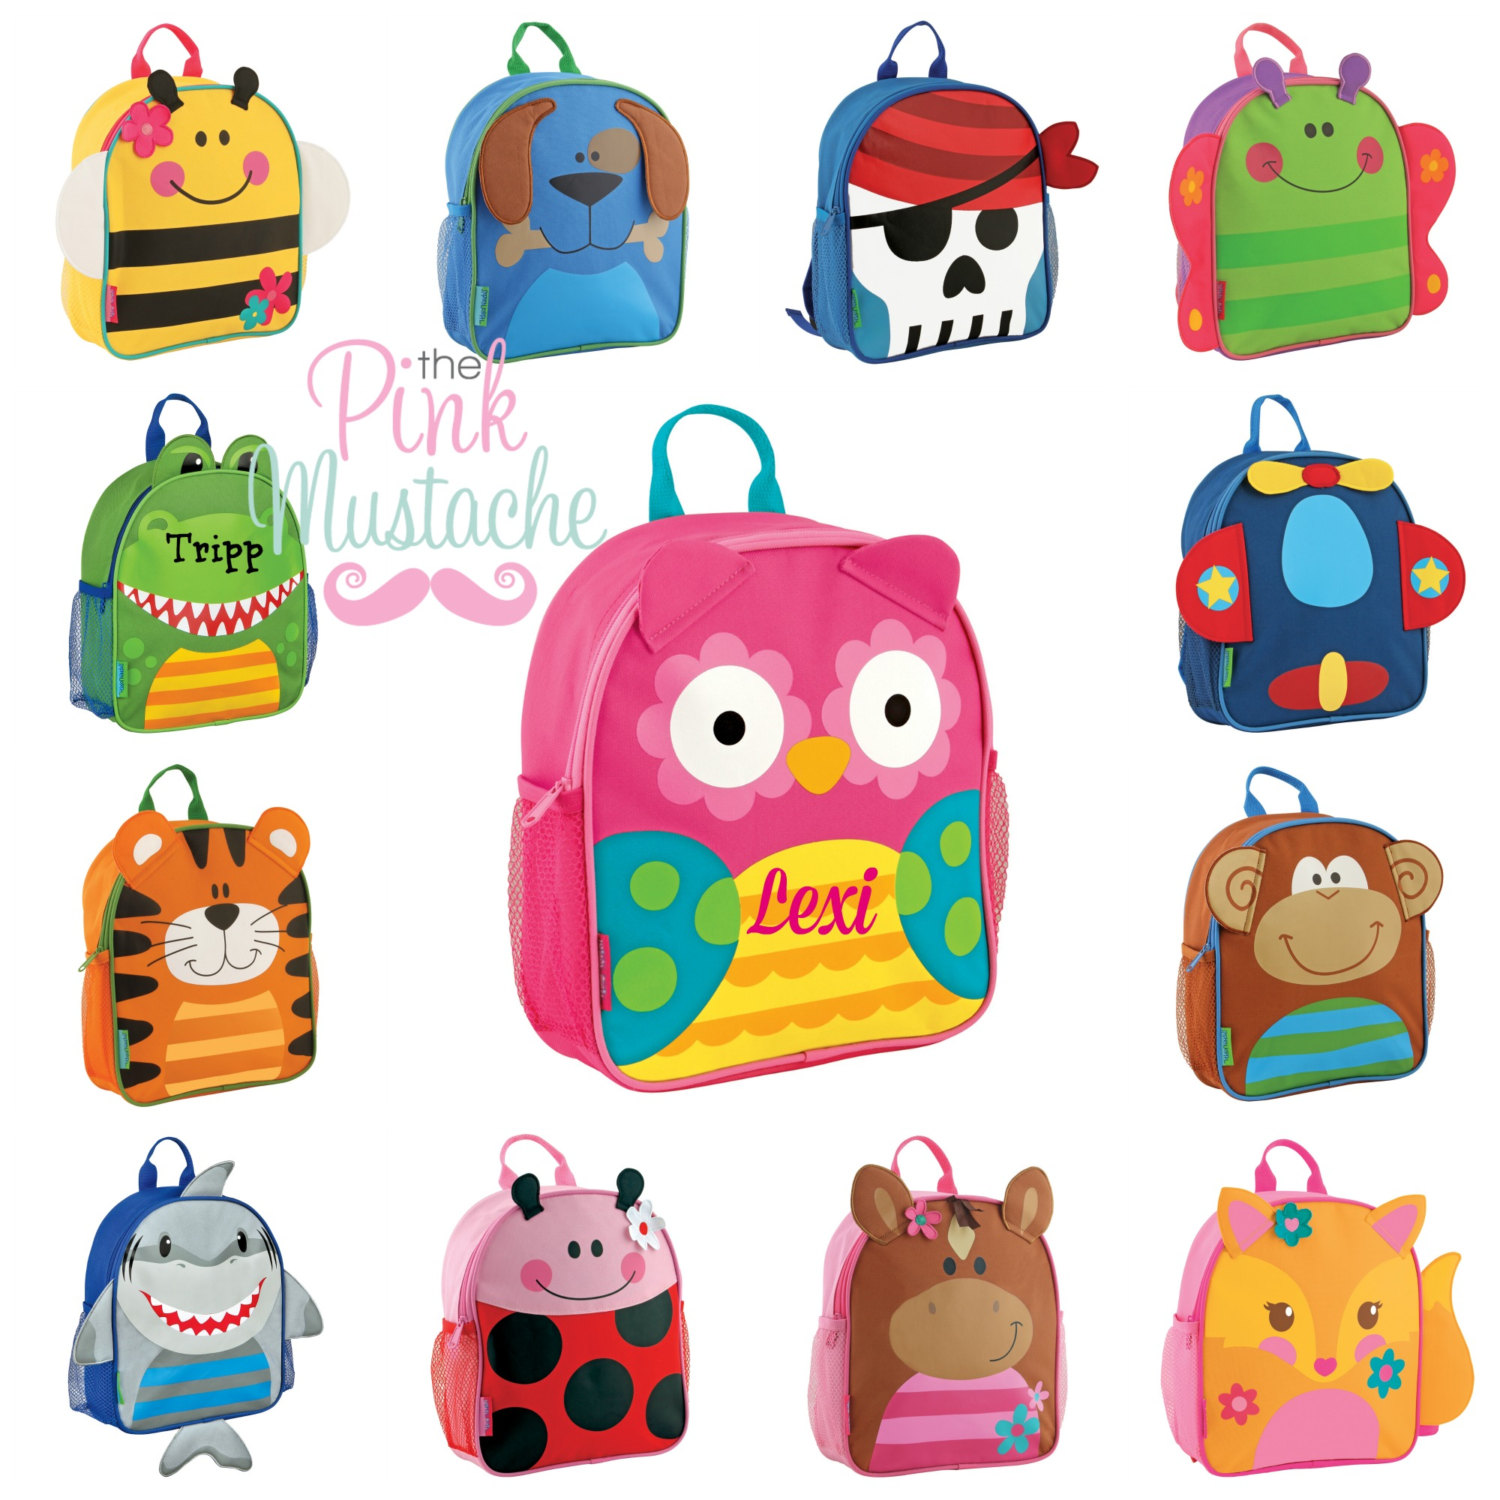 Little Kids Backpacks Gf1GjqDh